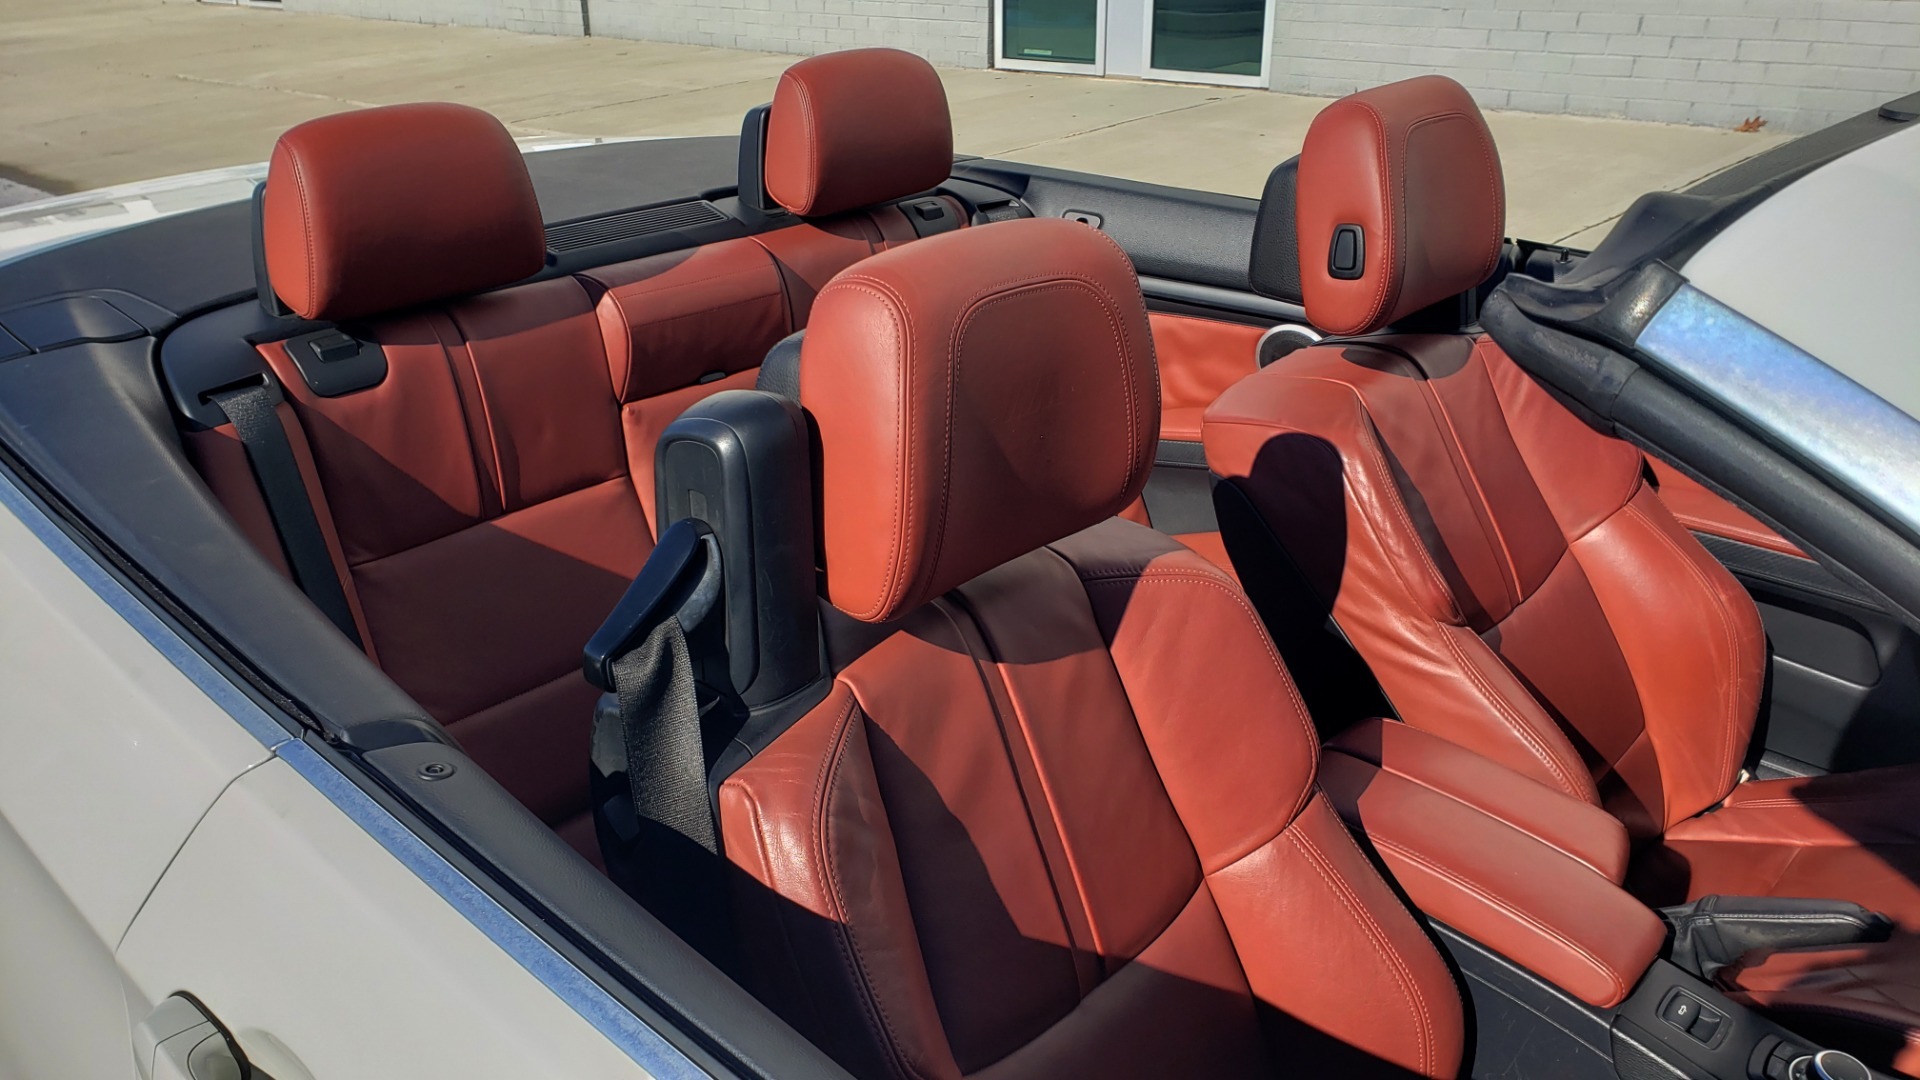 Used 2012 BMW M3 CONVERTIBLE / PREM PKG / NAV / M-DOUBLE CLUTCH AUTOMATIC for sale Sold at Formula Imports in Charlotte NC 28227 25